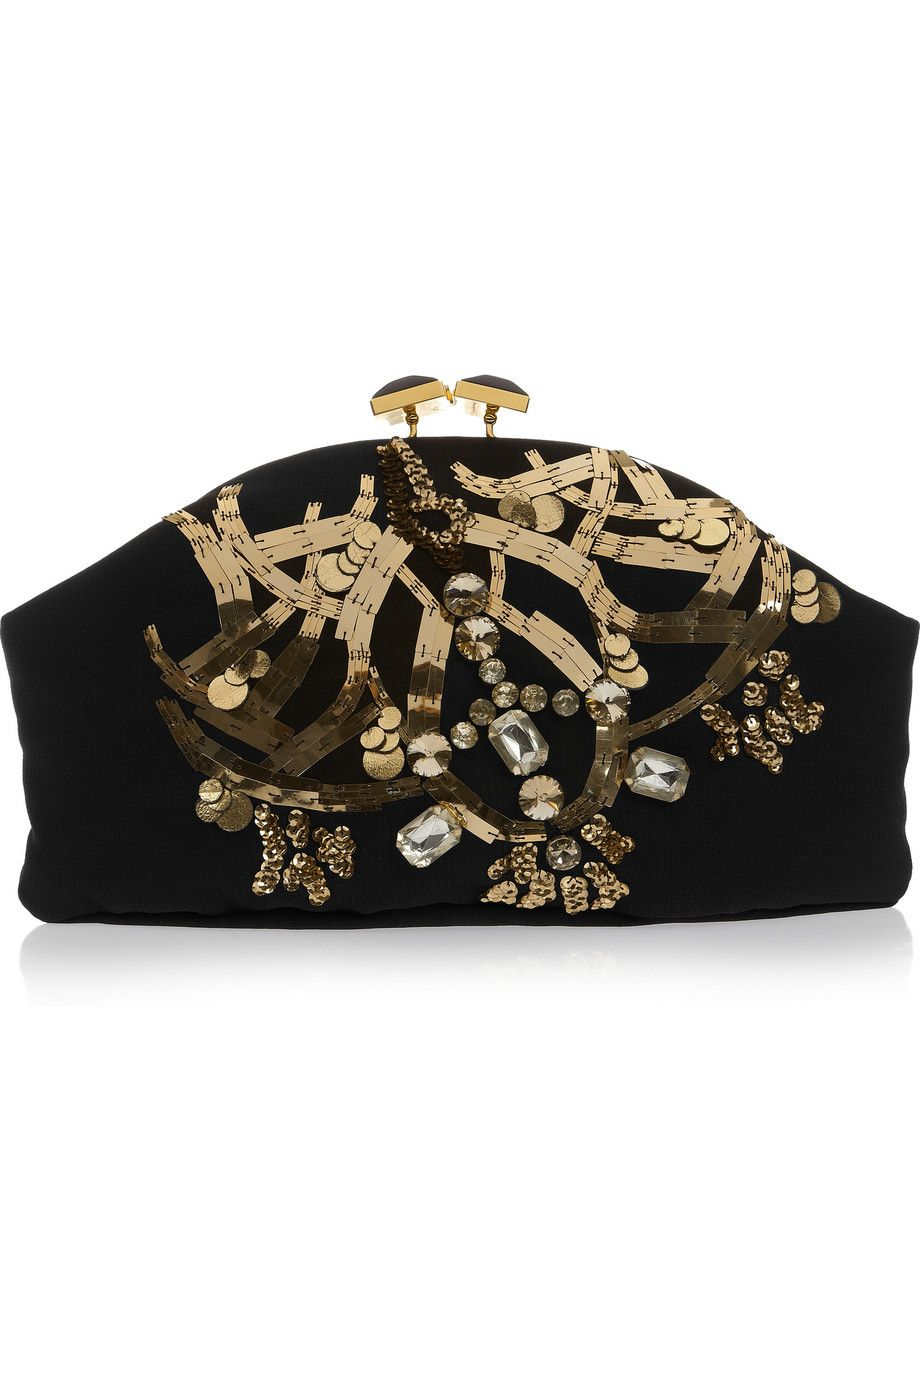 Marni - Jewel and horn-embellished clutch